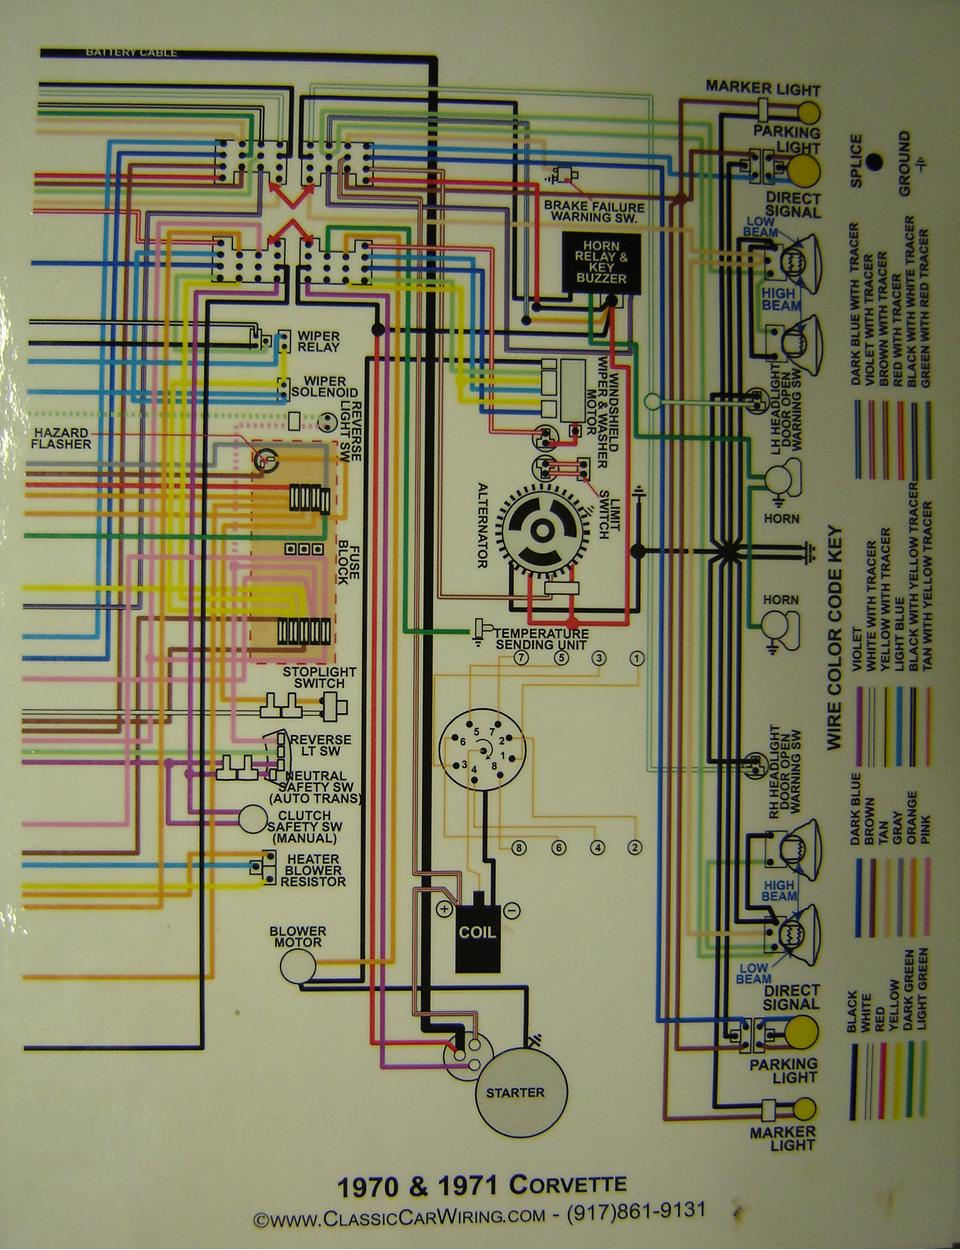 1970 71 corvette color wiring diagram B corvette wiring diagram corvette parts diagram \u2022 wiring diagrams corvette wiring diagrams free at readyjetset.co